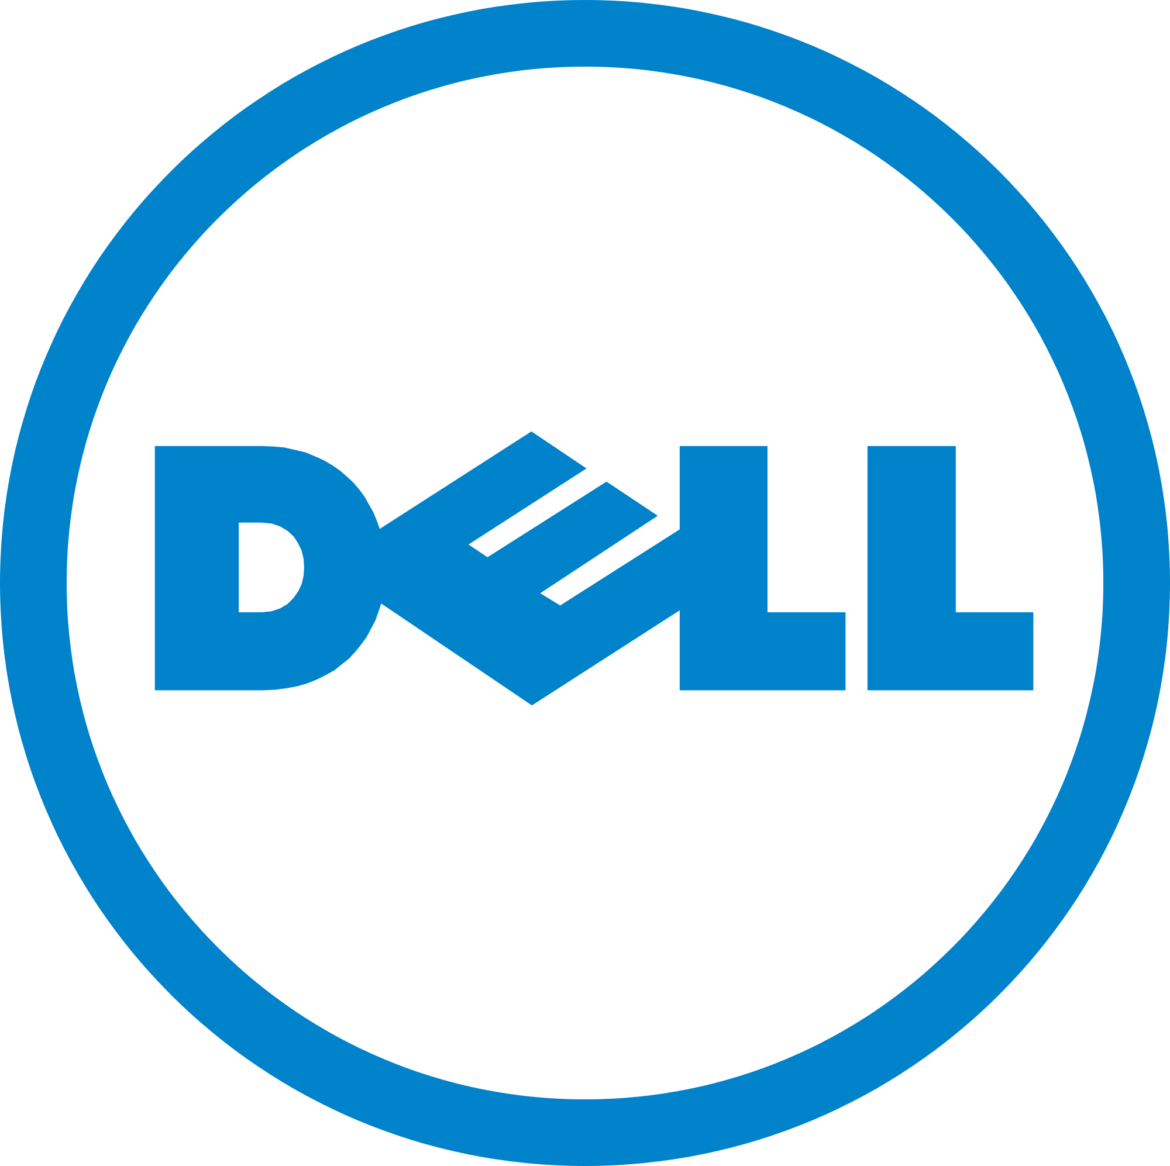 Dell-Logo-2.png